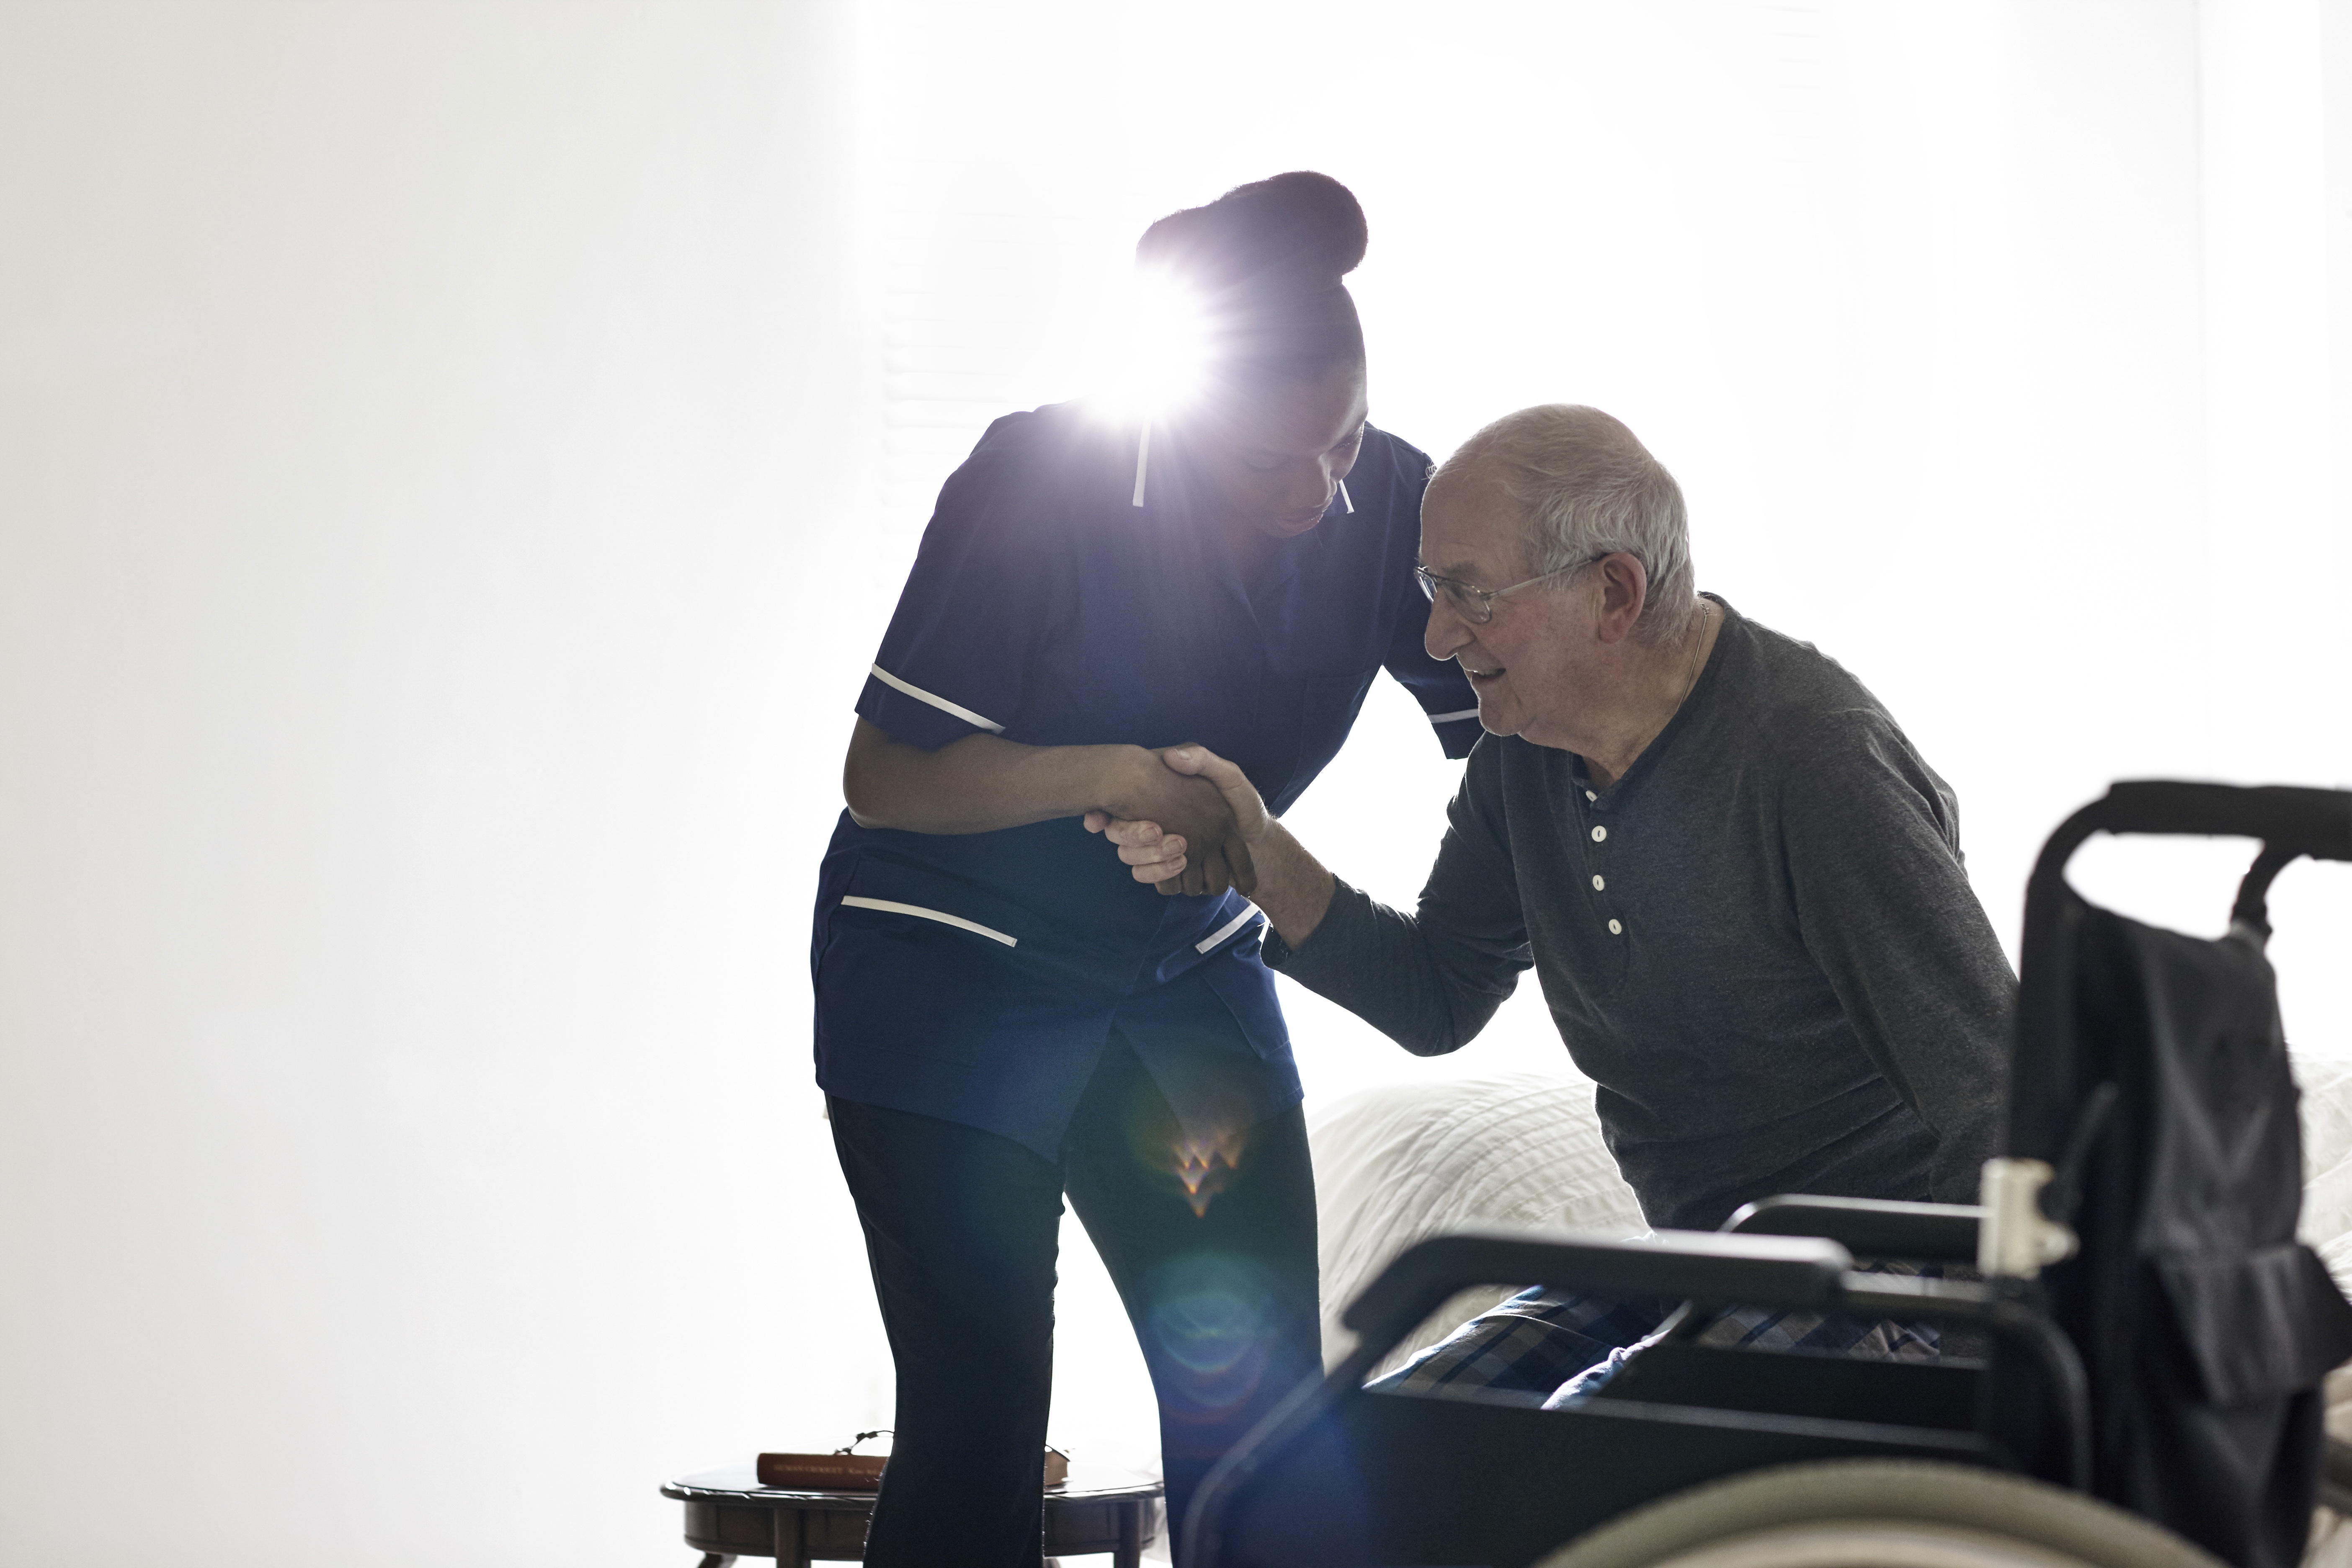 Female nurse helping senior man get up from bed